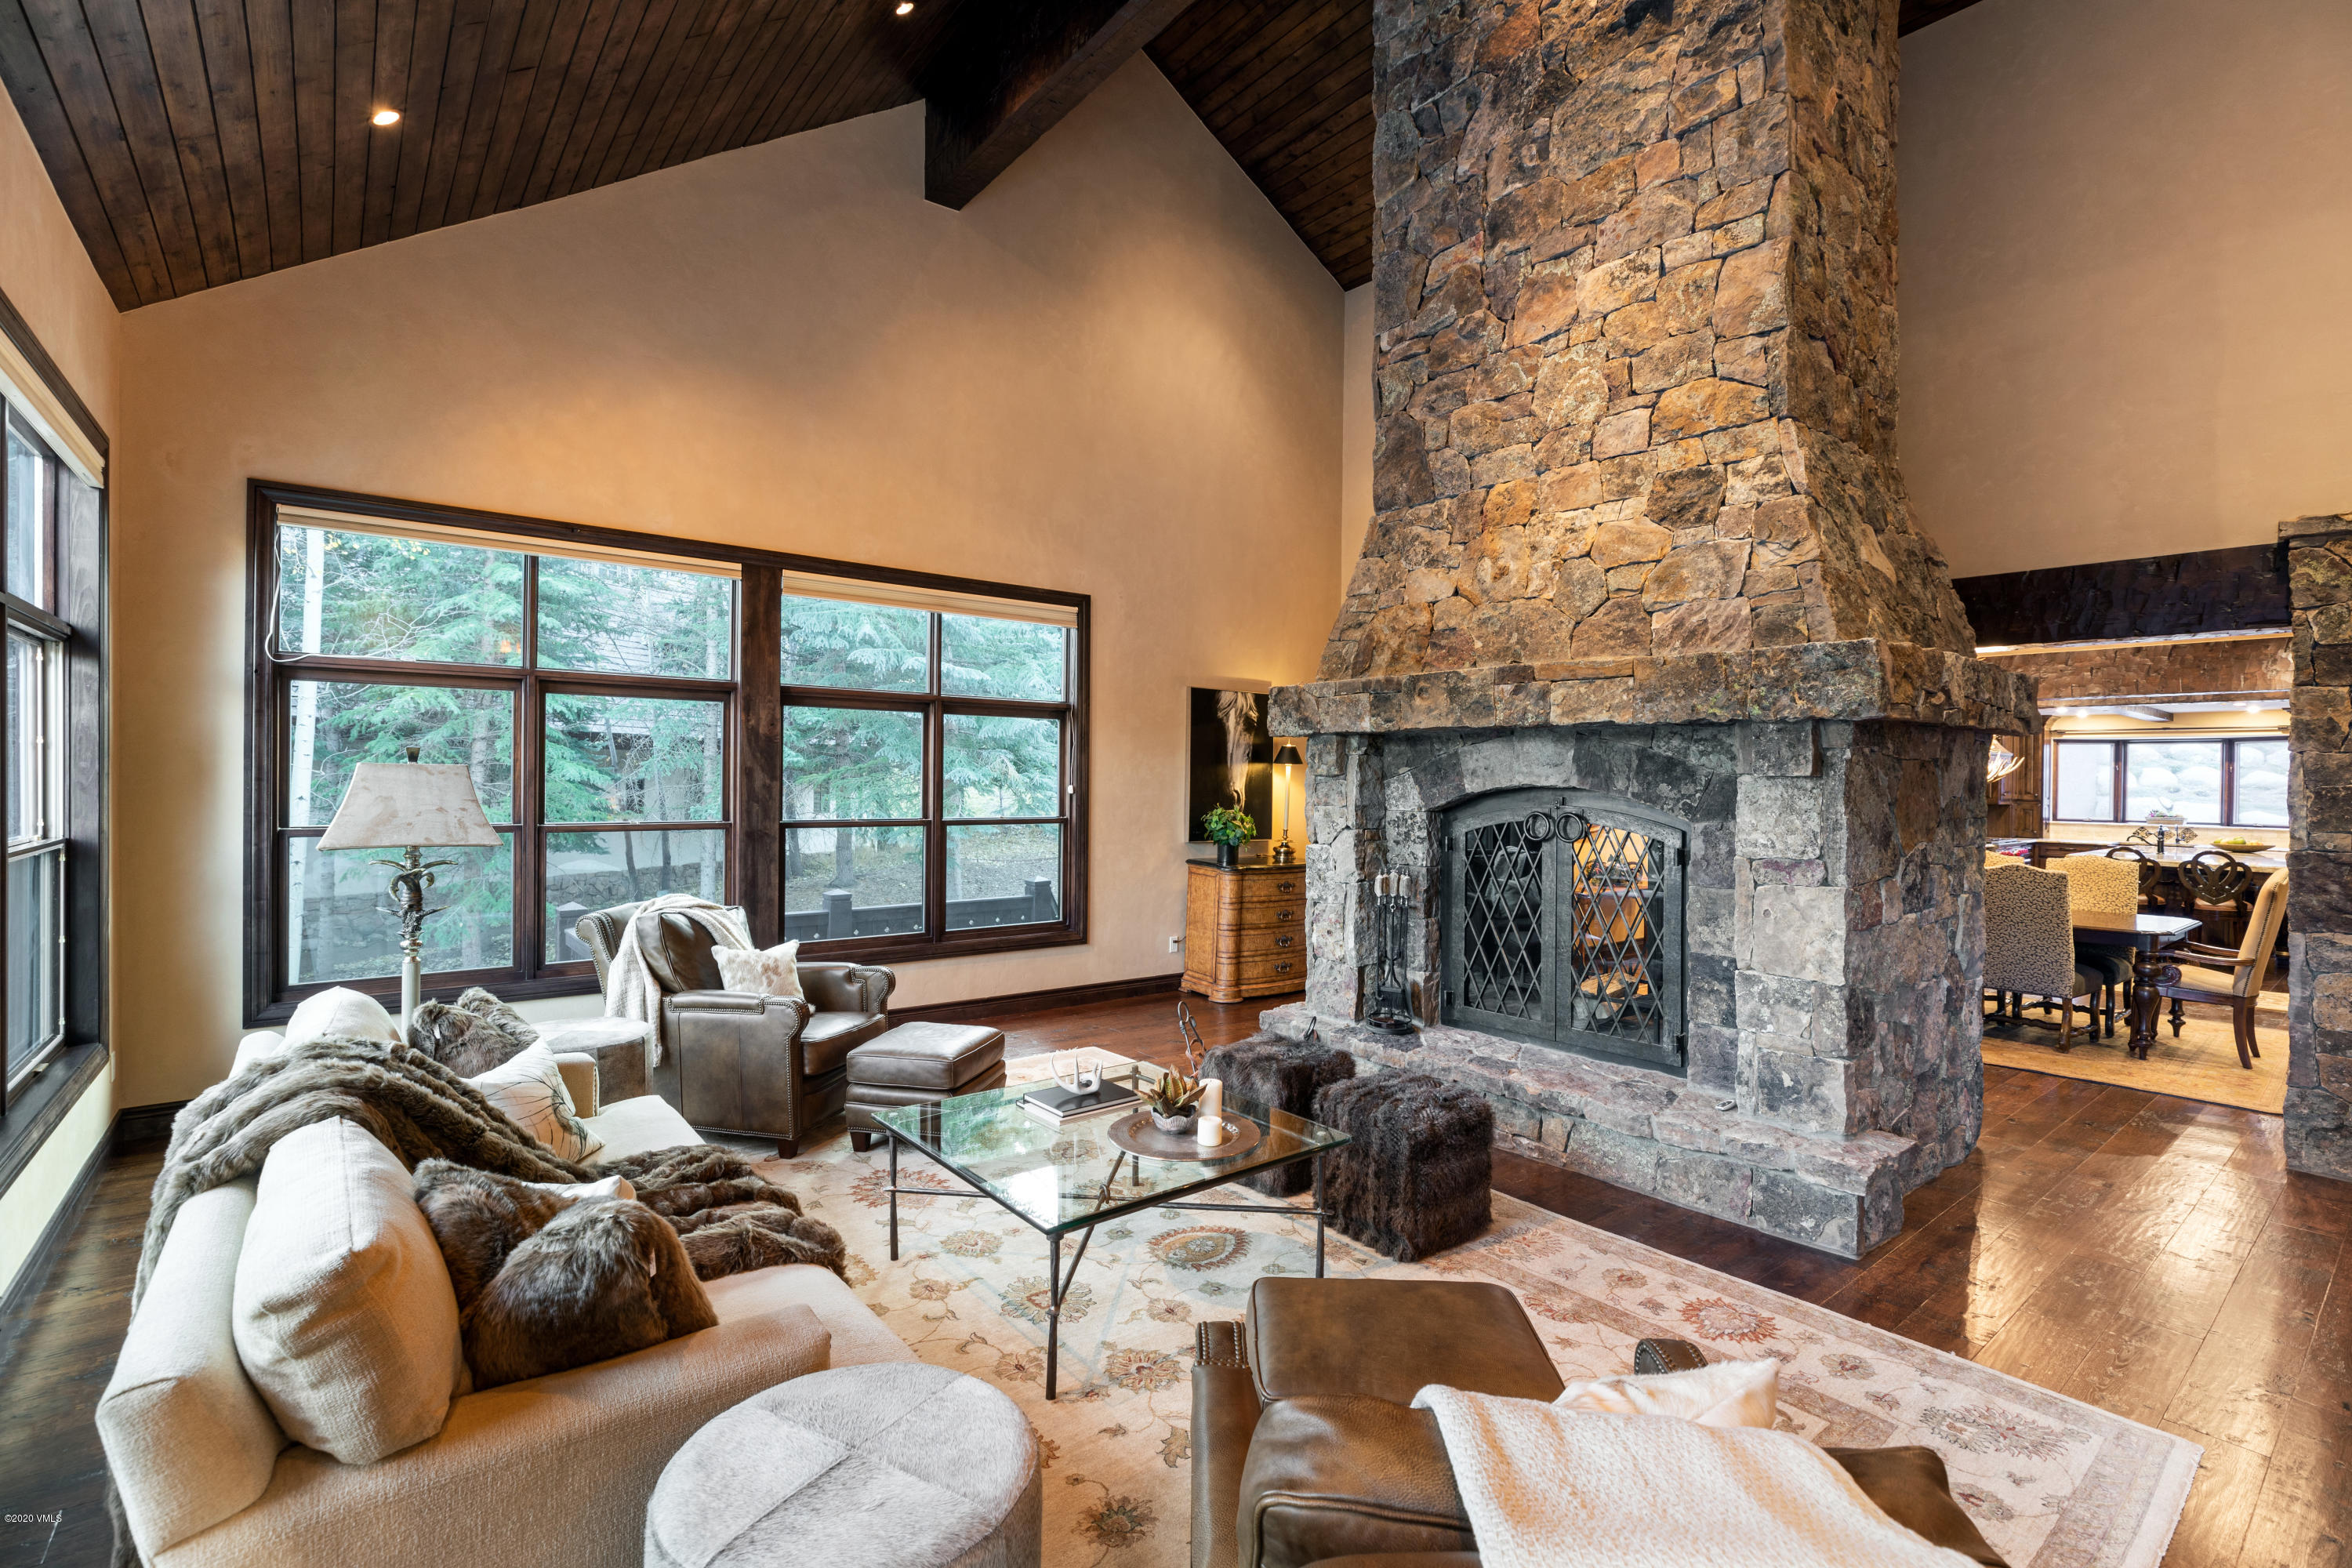 Opportunity to own a remodeled home on a private homesite within the resort with ski-in access from the McCoy Ski-Way directly to this property. Turnipseed Construction remodel with new kitchen and bathrooms; distressed flooring; professionally staged by local designer. Great room with high vaulted ceilings and a grand, wood-burning stone fireplace as the centerpiece of the main level. Spacious and comfortable floor plan with a separate caretaker's apartment. Air conditioning in the upper levels. Big, sunny back patio with fire pit and hot tub; immaculate condition; DaVinci roof. Sold partially furnished.